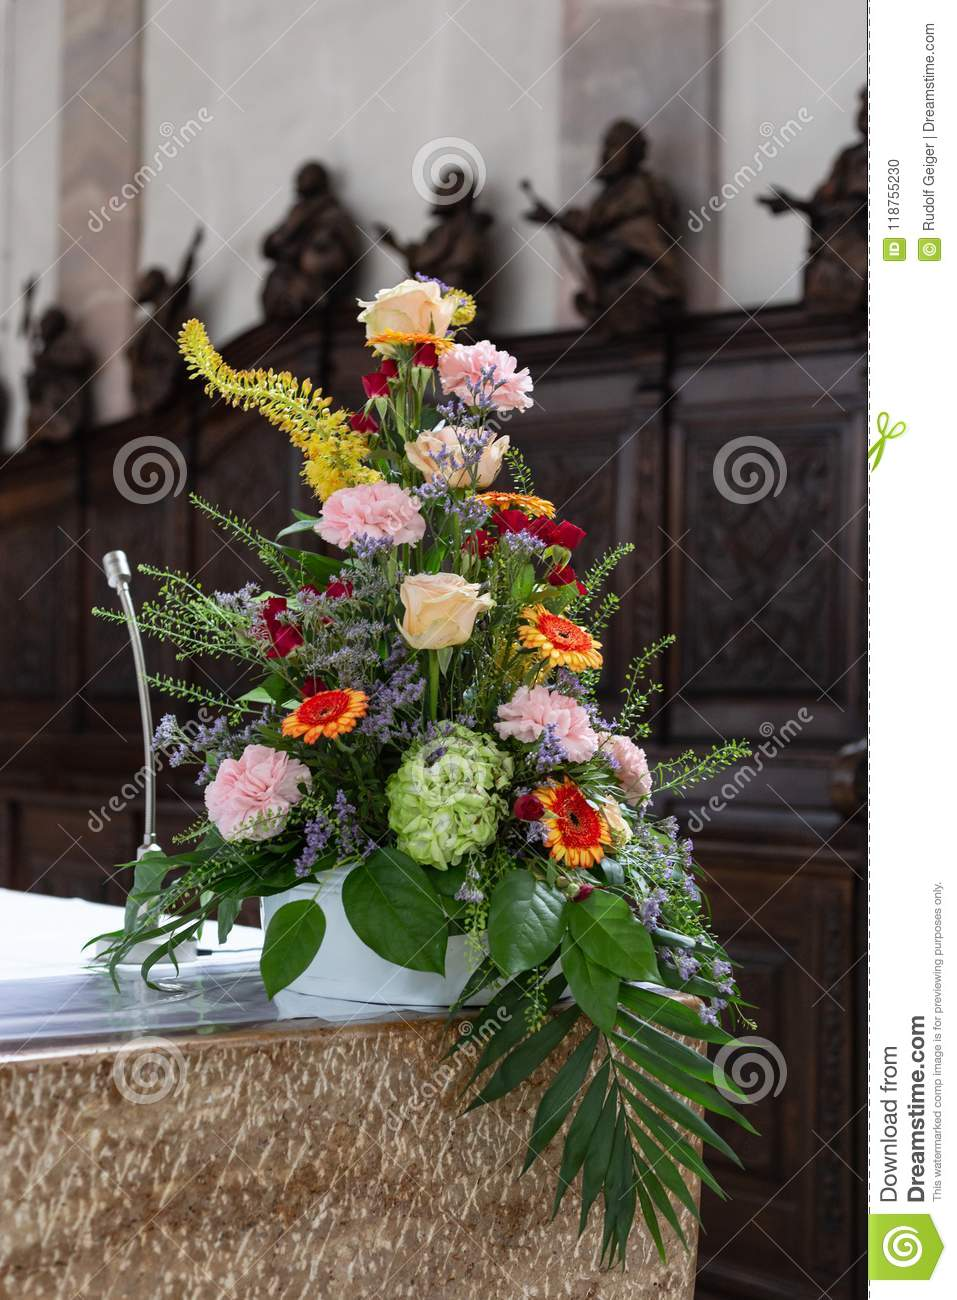 Flower Bouquet In Church Altar Stock Photo Image Of Cathedral Romantic 118755230